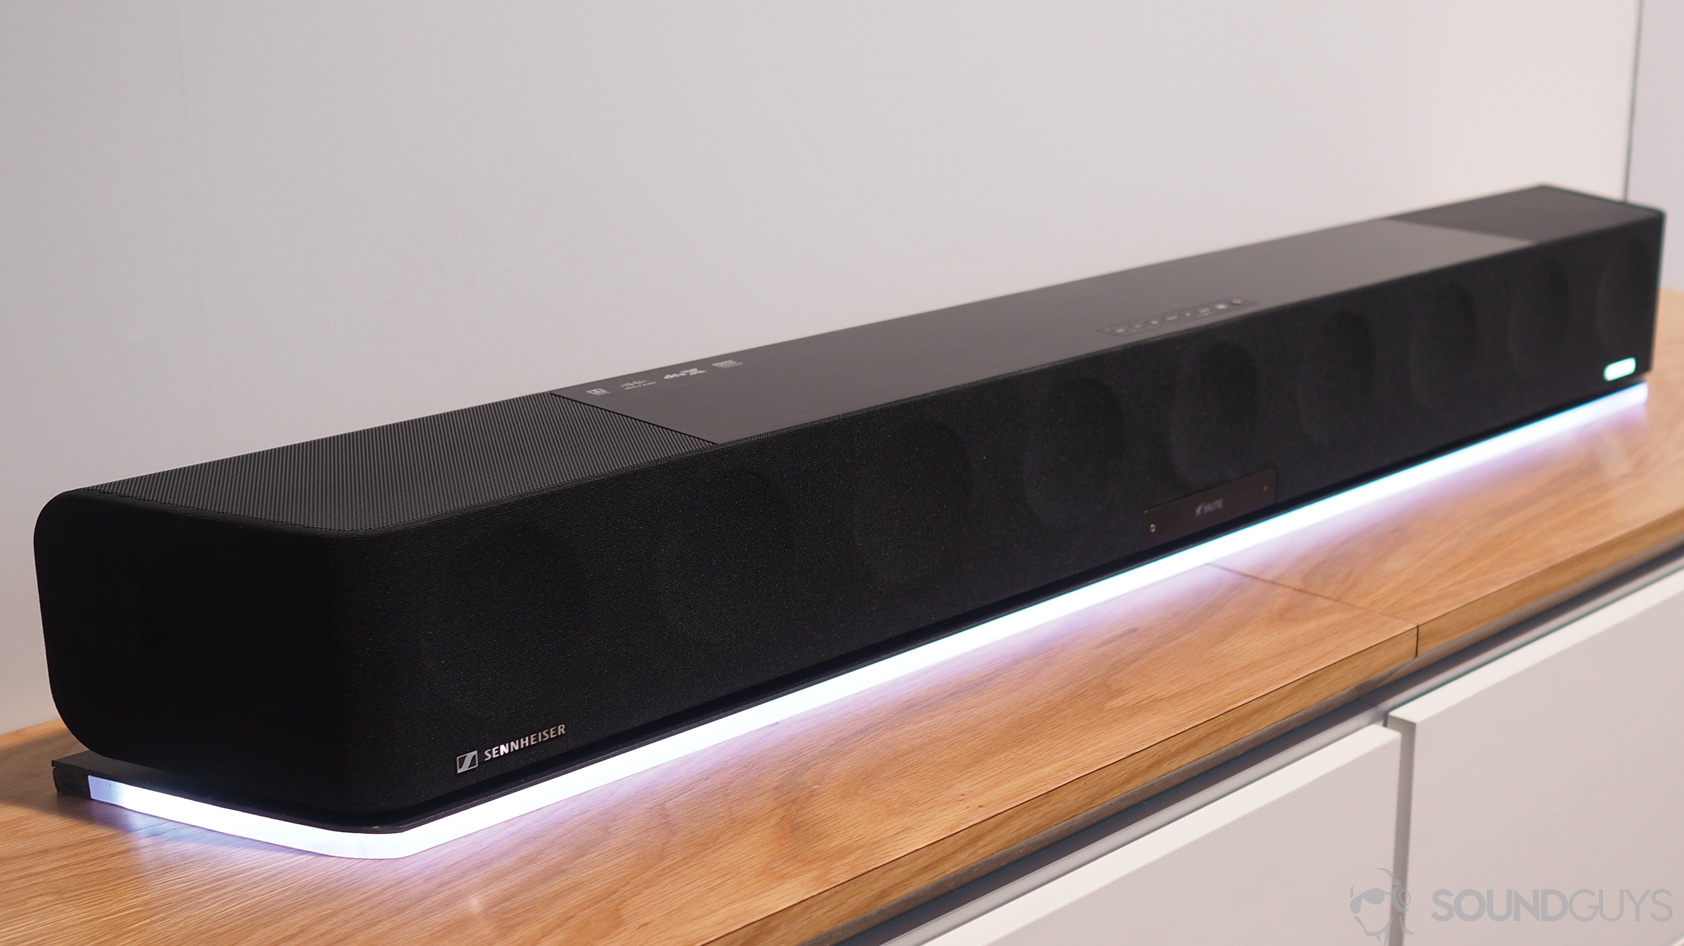 A photo of the Sennheiser AMBEO Soundbar.